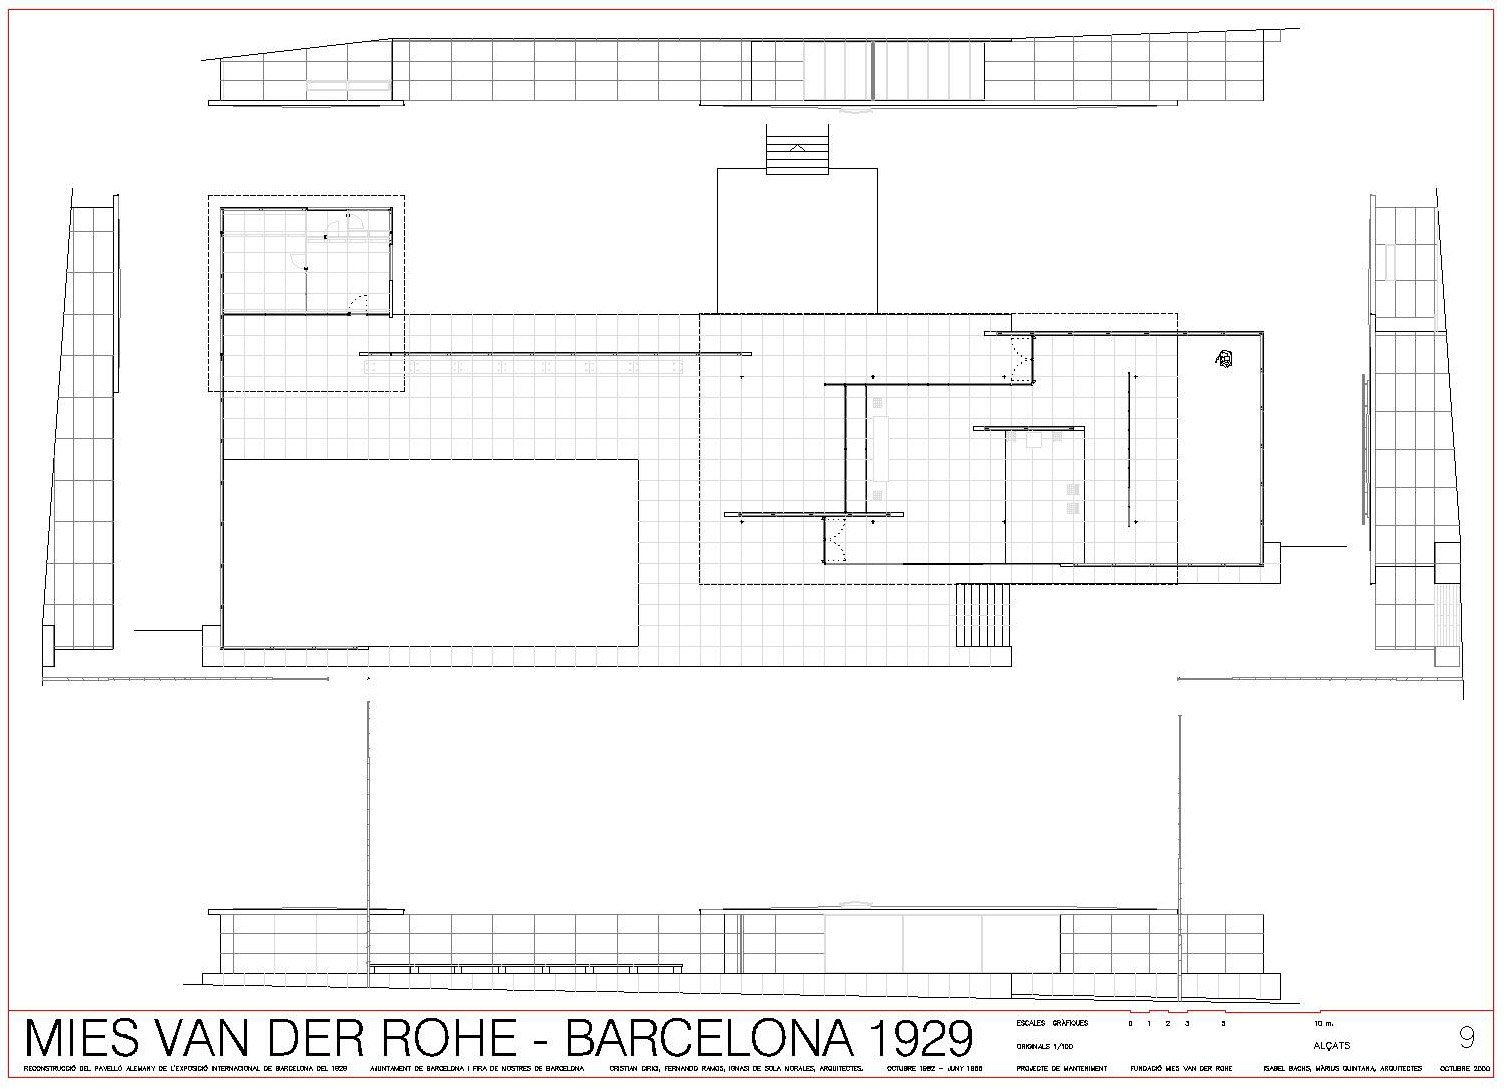 Barcelona pavilion section drawing - Architecture As Aesthetics